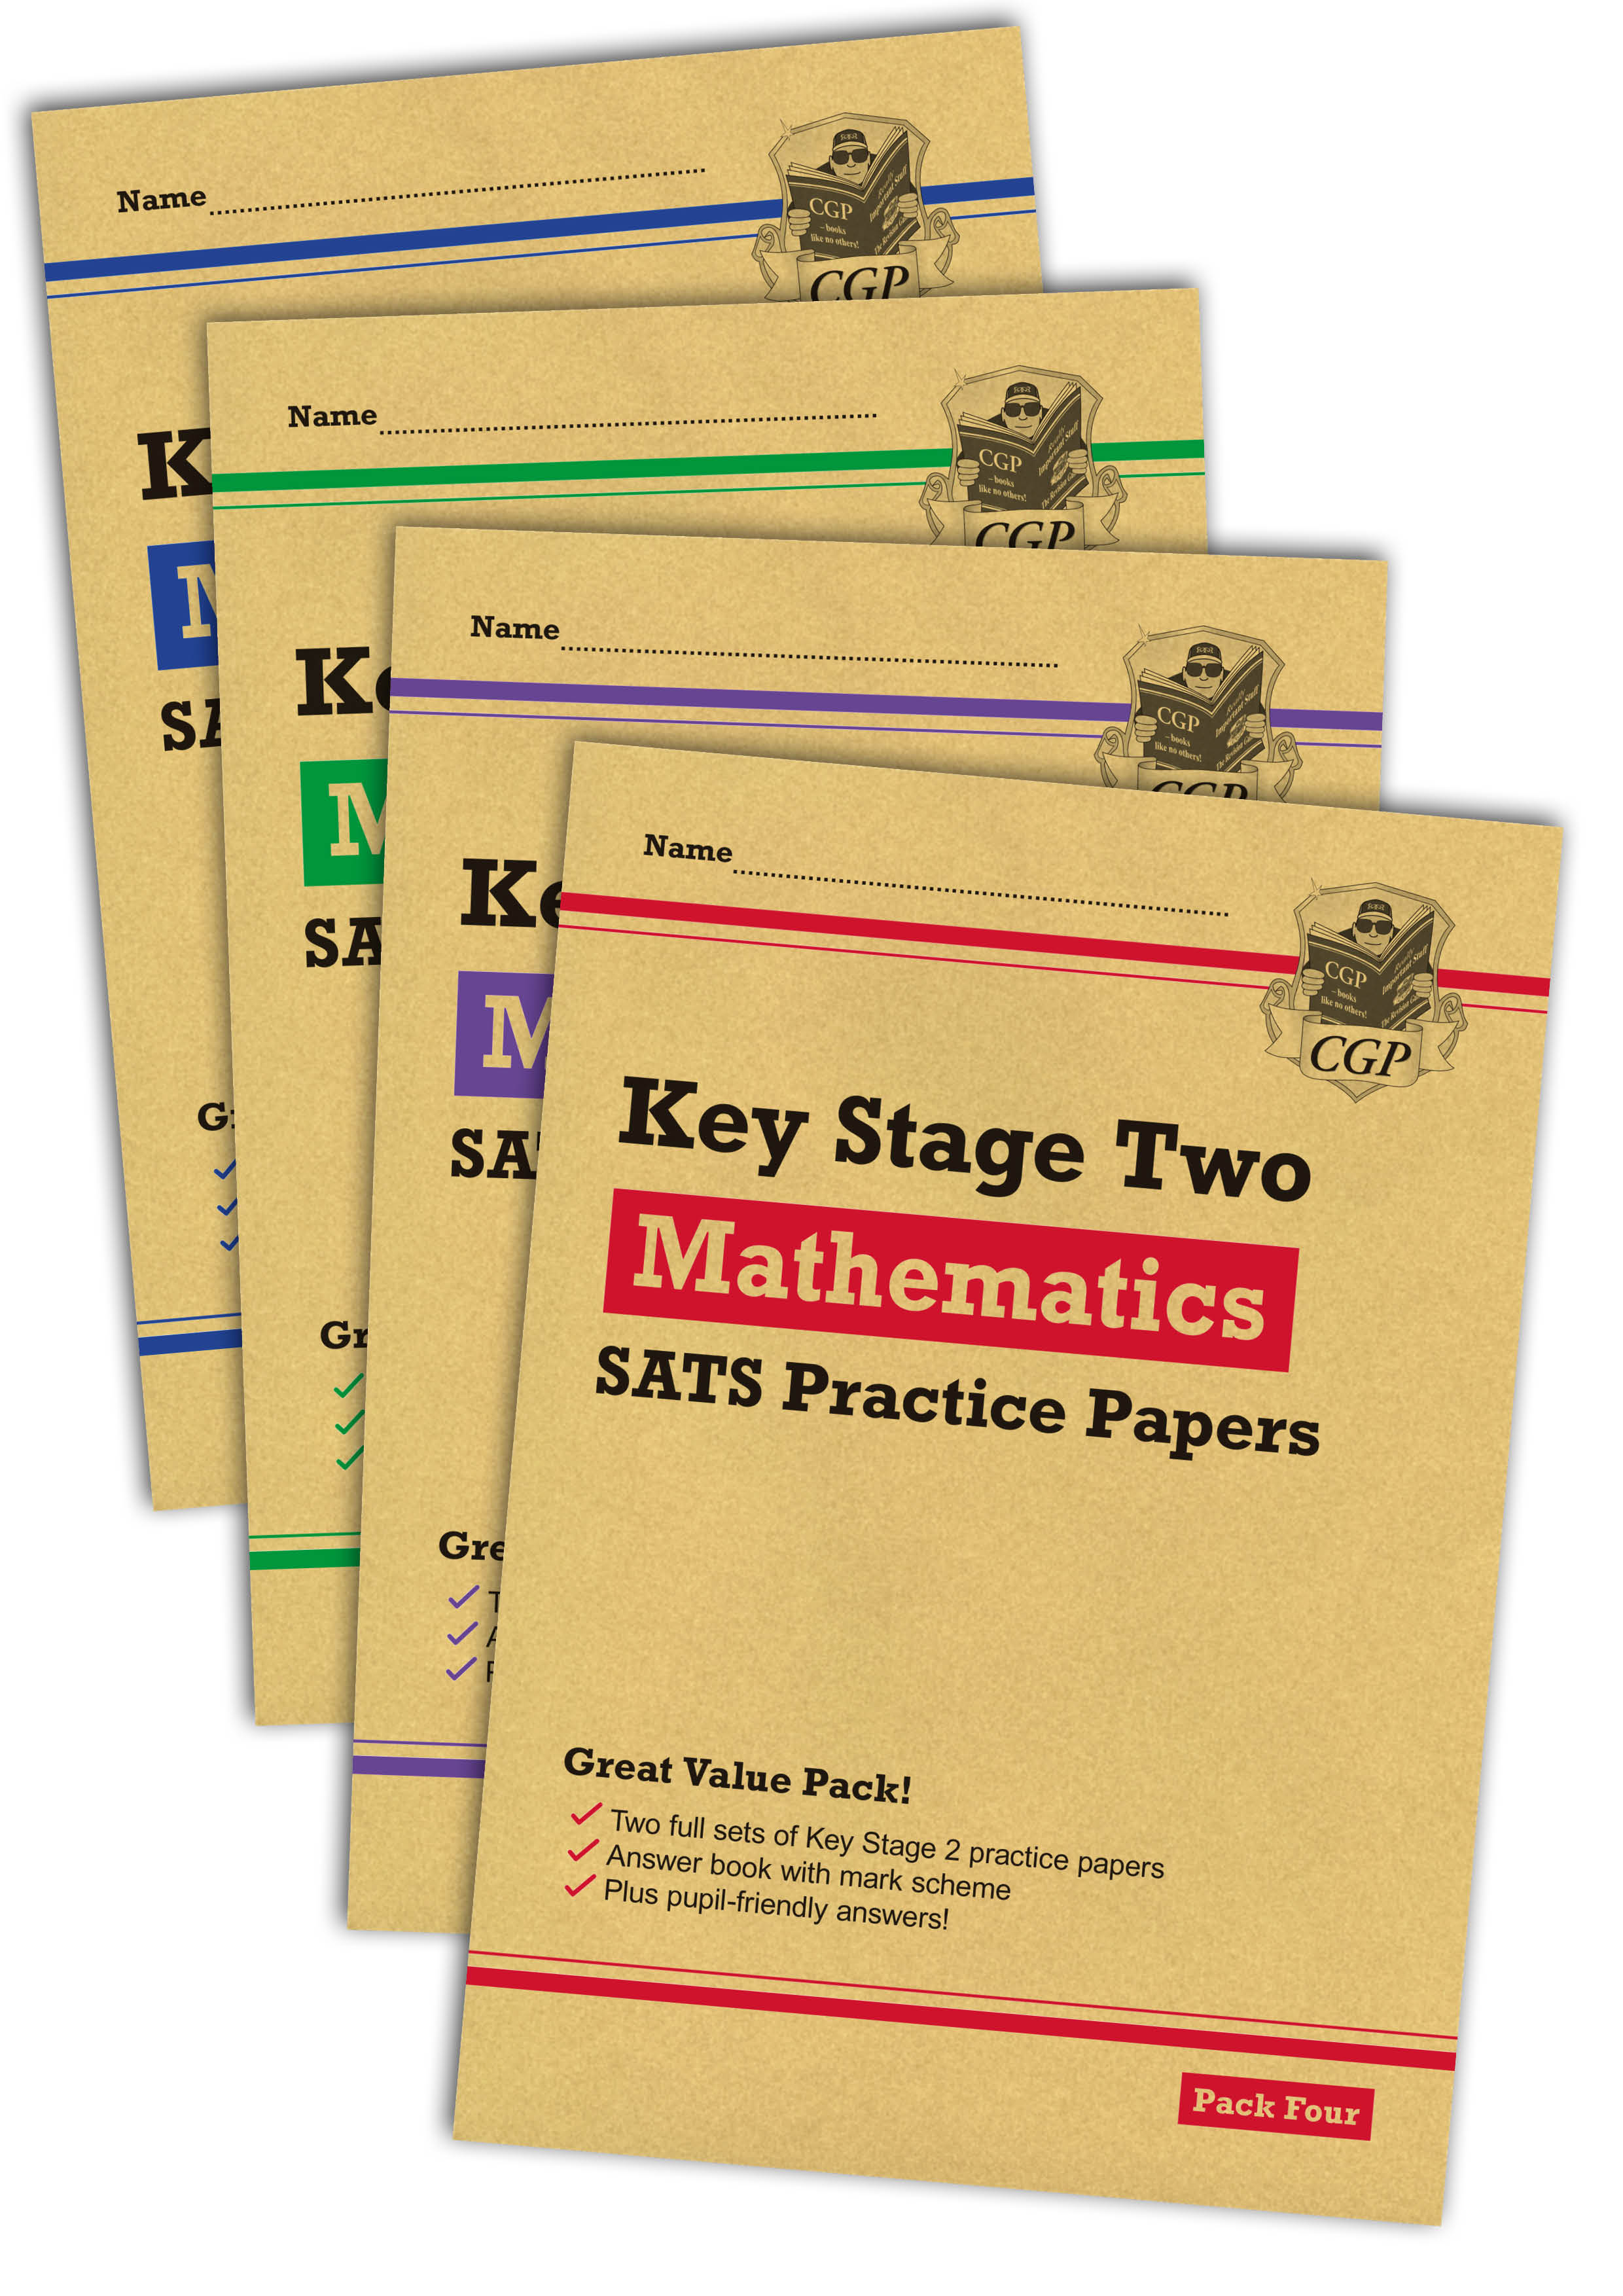 MHB4P23 - New KS2 Maths SATS Practice Paper Bundle: Packs 1, 2, 3 & 4 (for the 2019 tests)